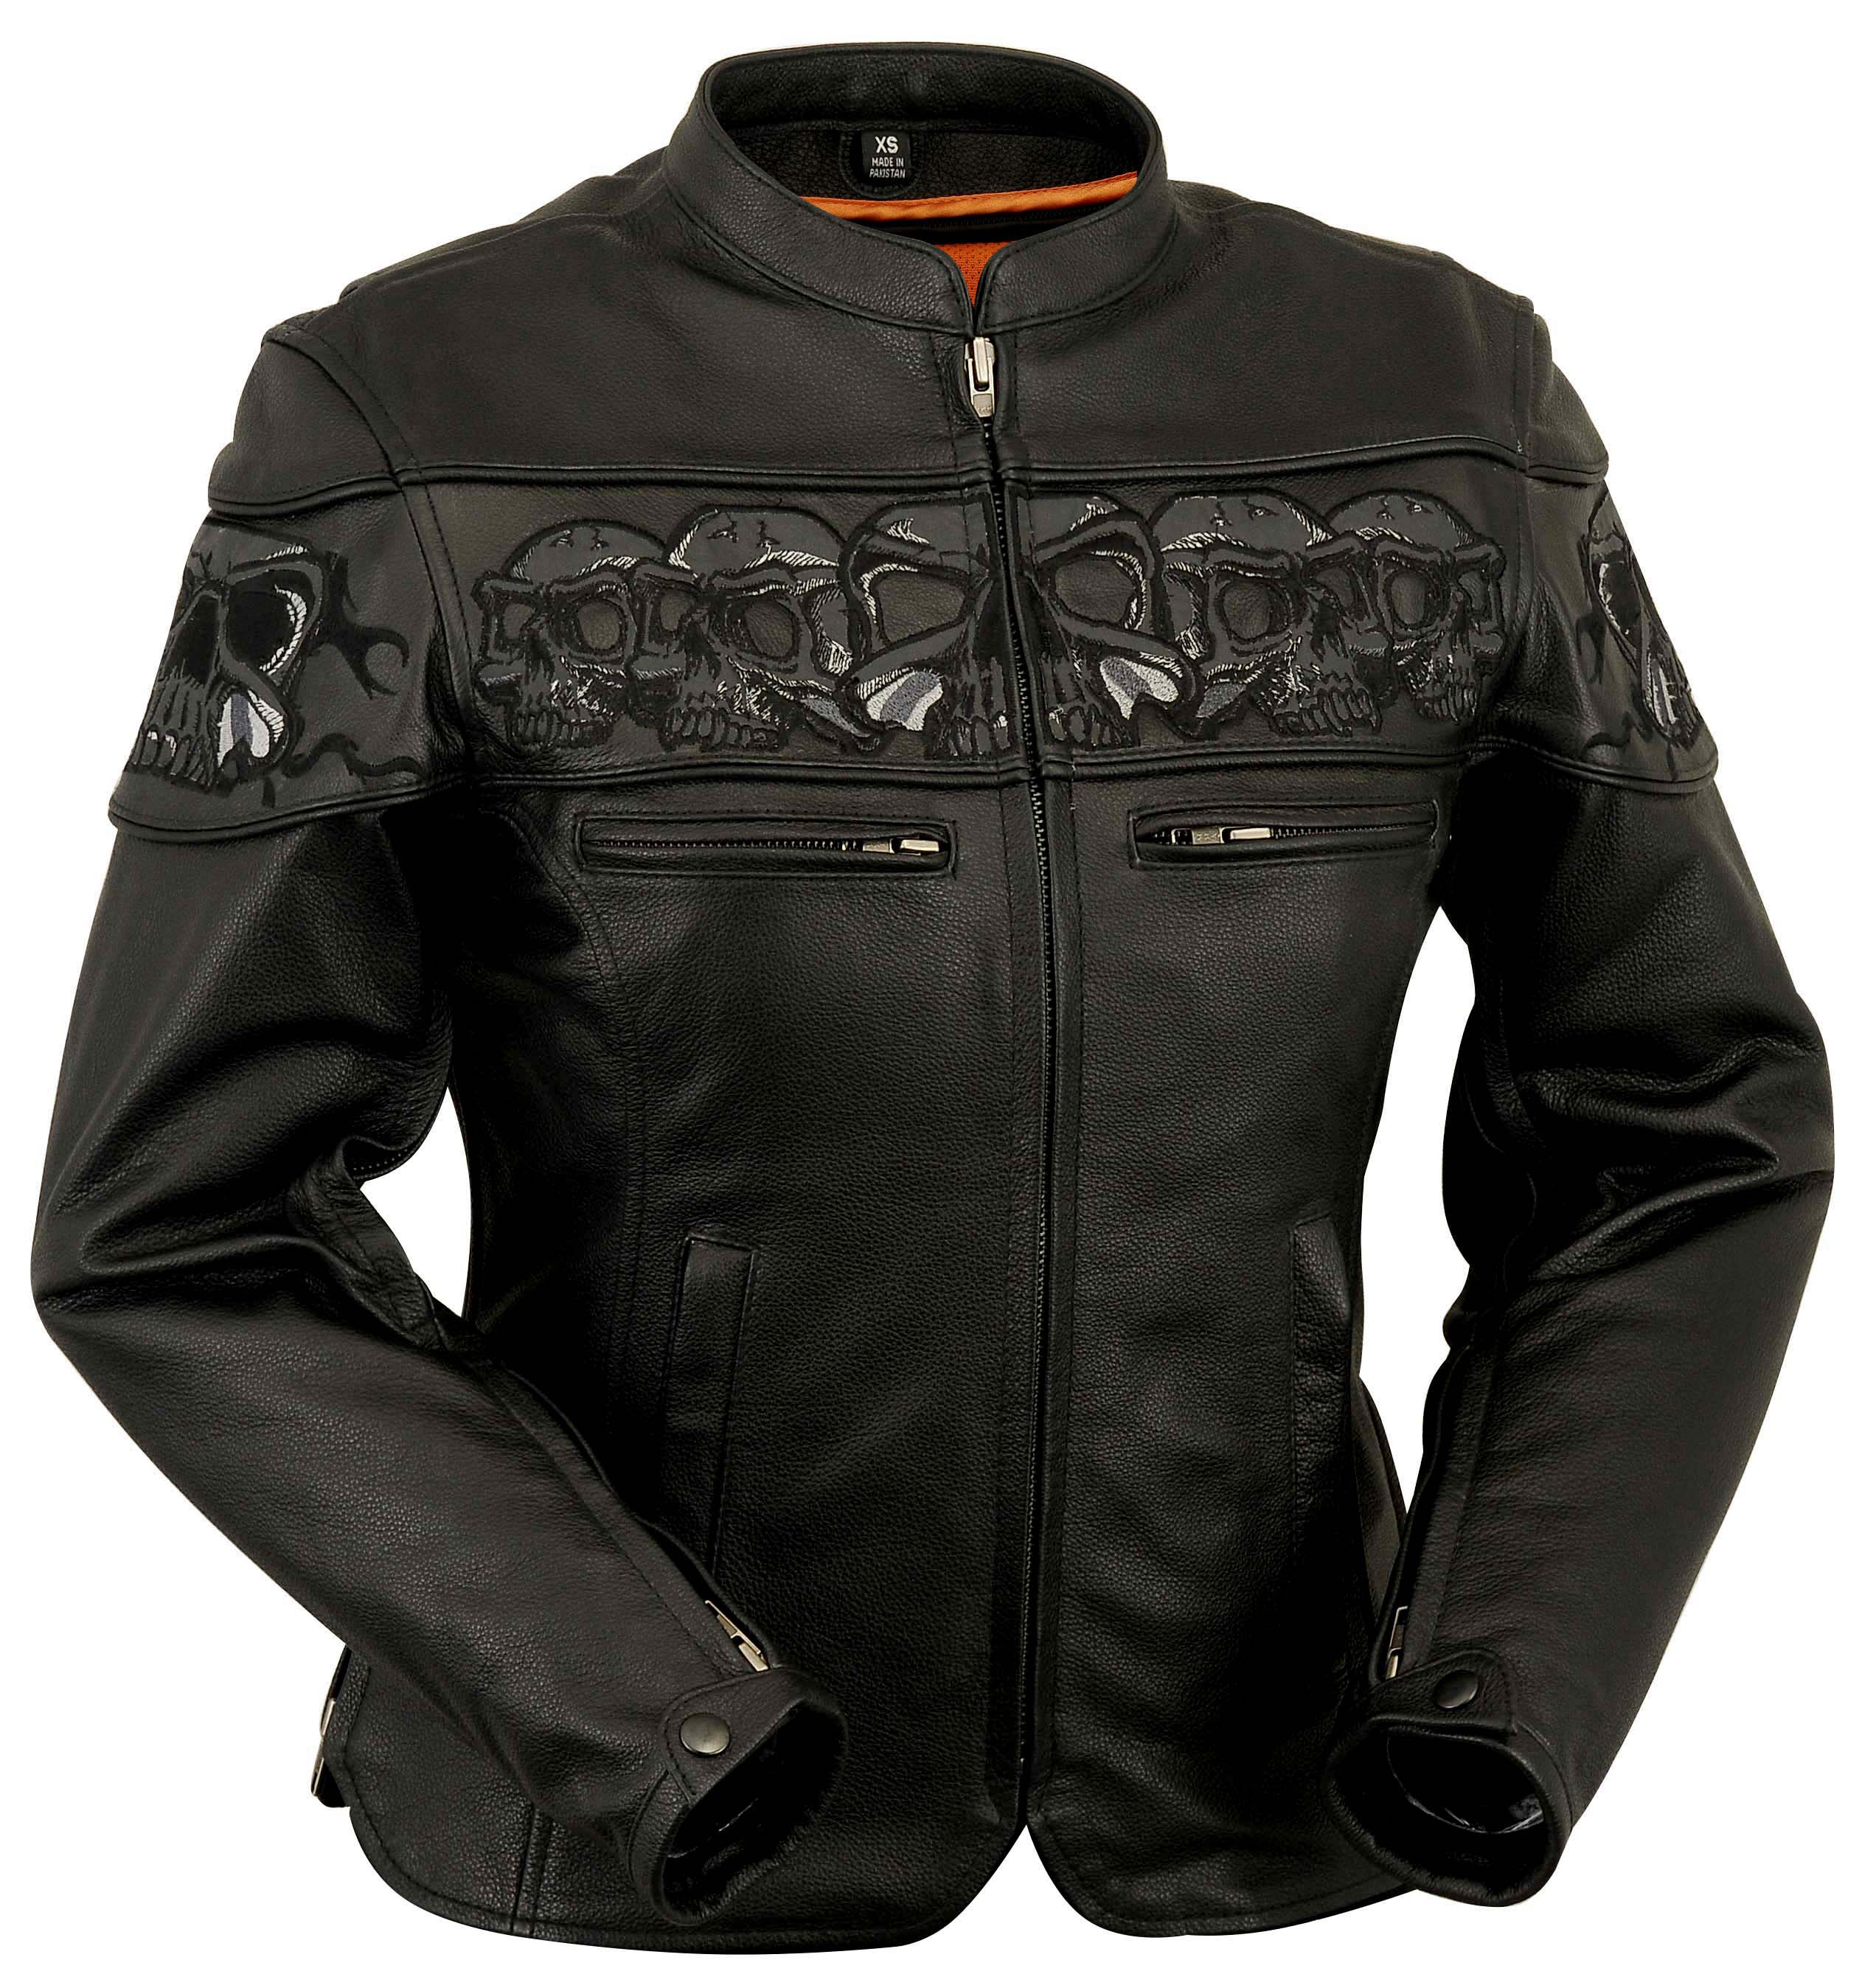 Womens Leather Scooter Jacket w/ Reflective Skulls